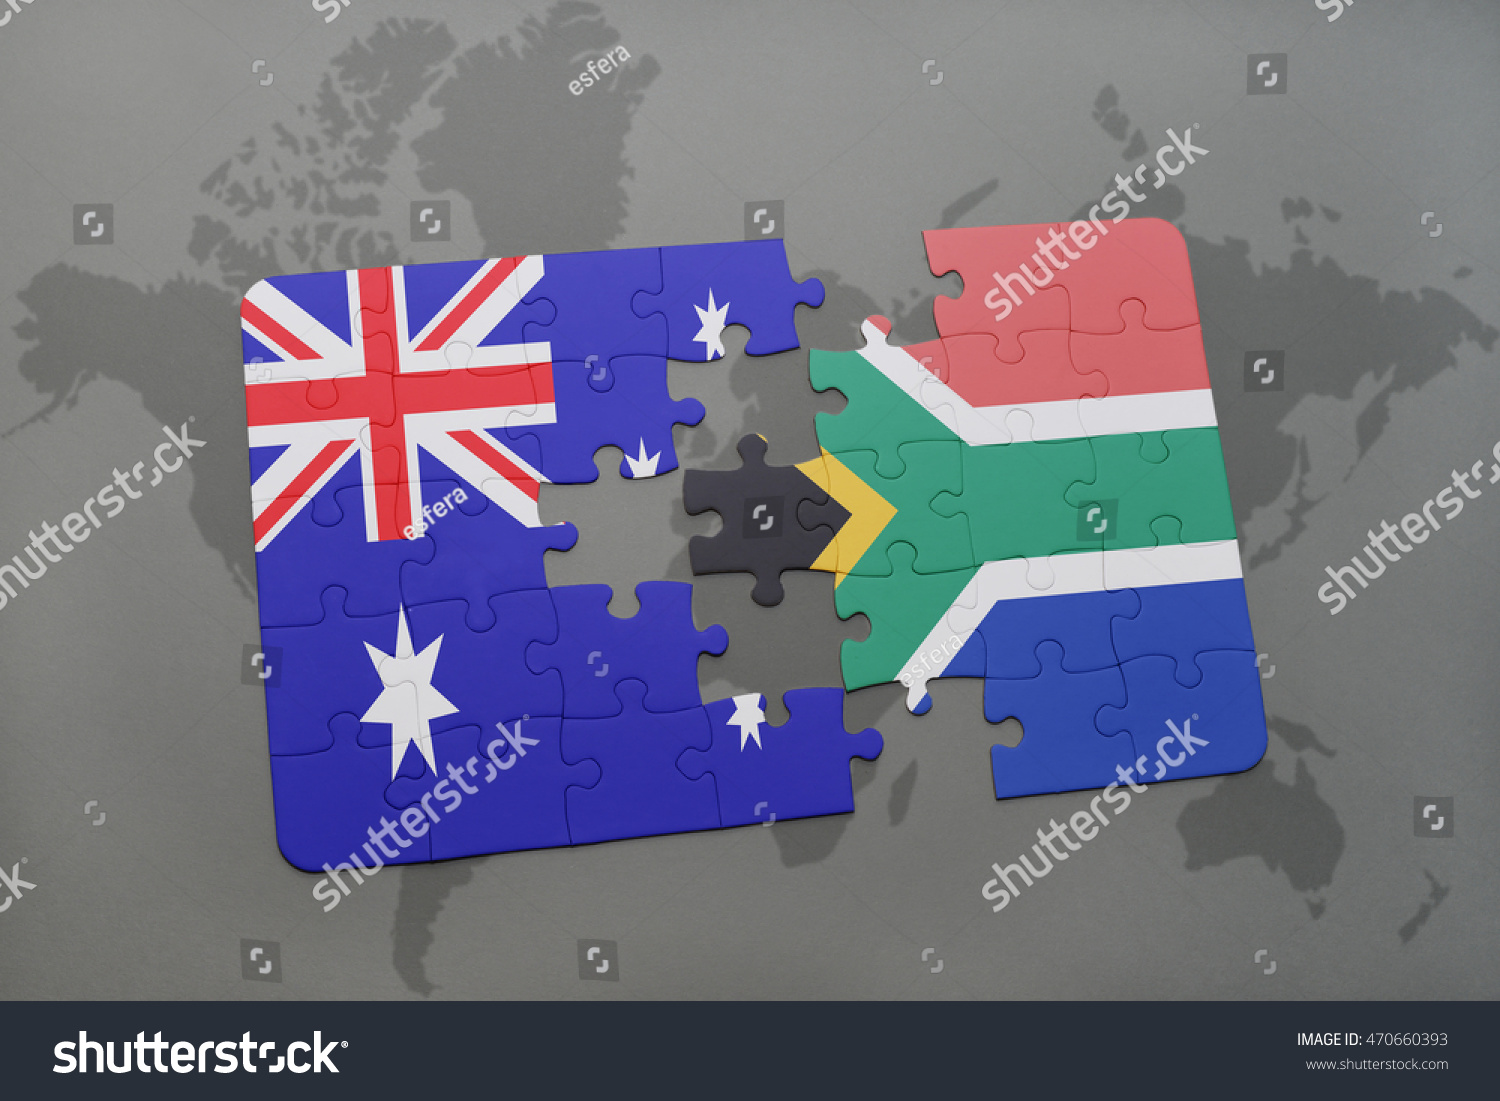 Puzzle national flag australia south africa stock illustration puzzle with the national flag of australia and south africa on a world map background gumiabroncs